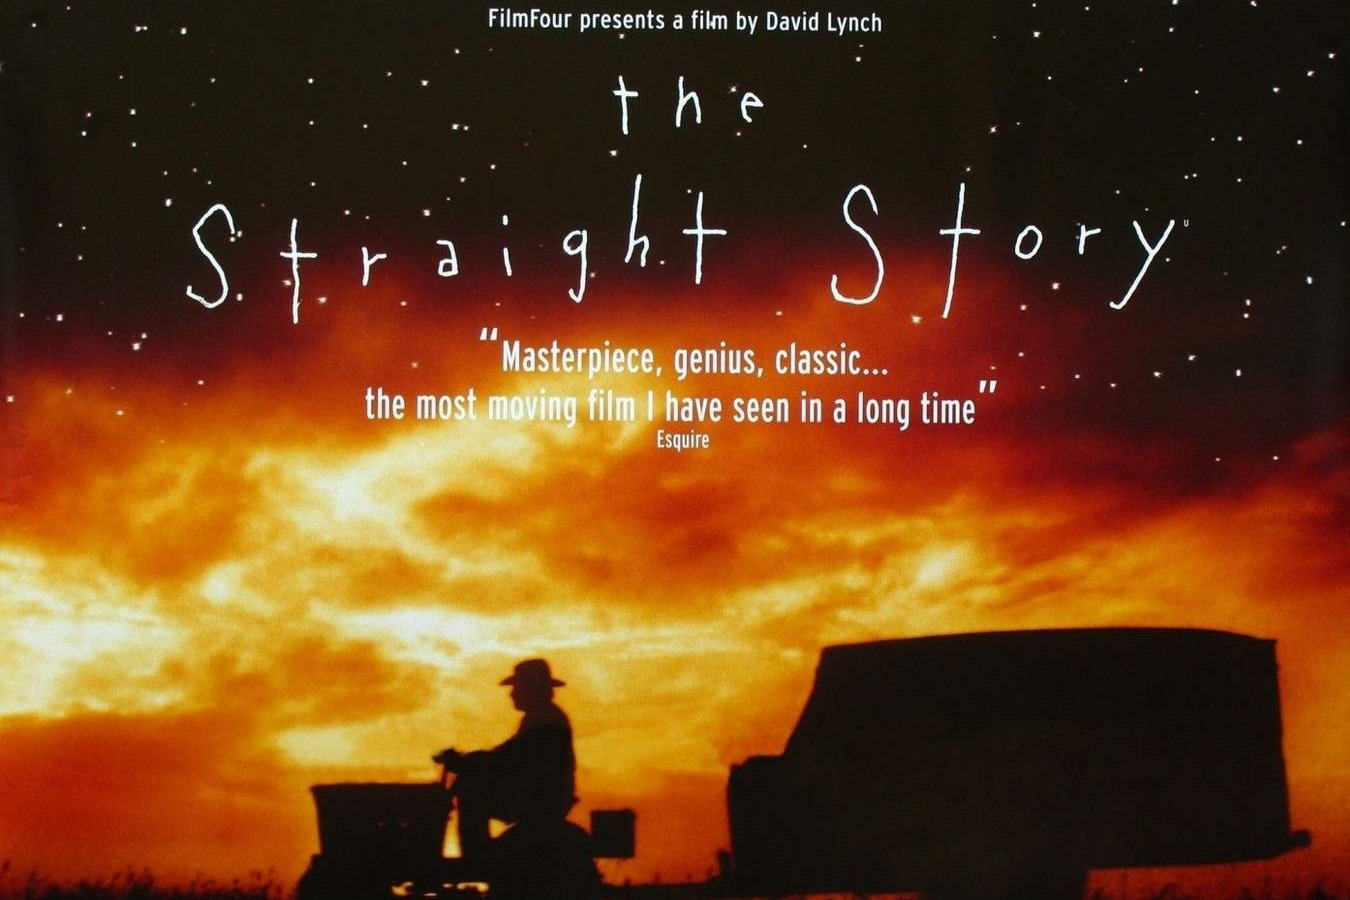 Film: The Straight Story